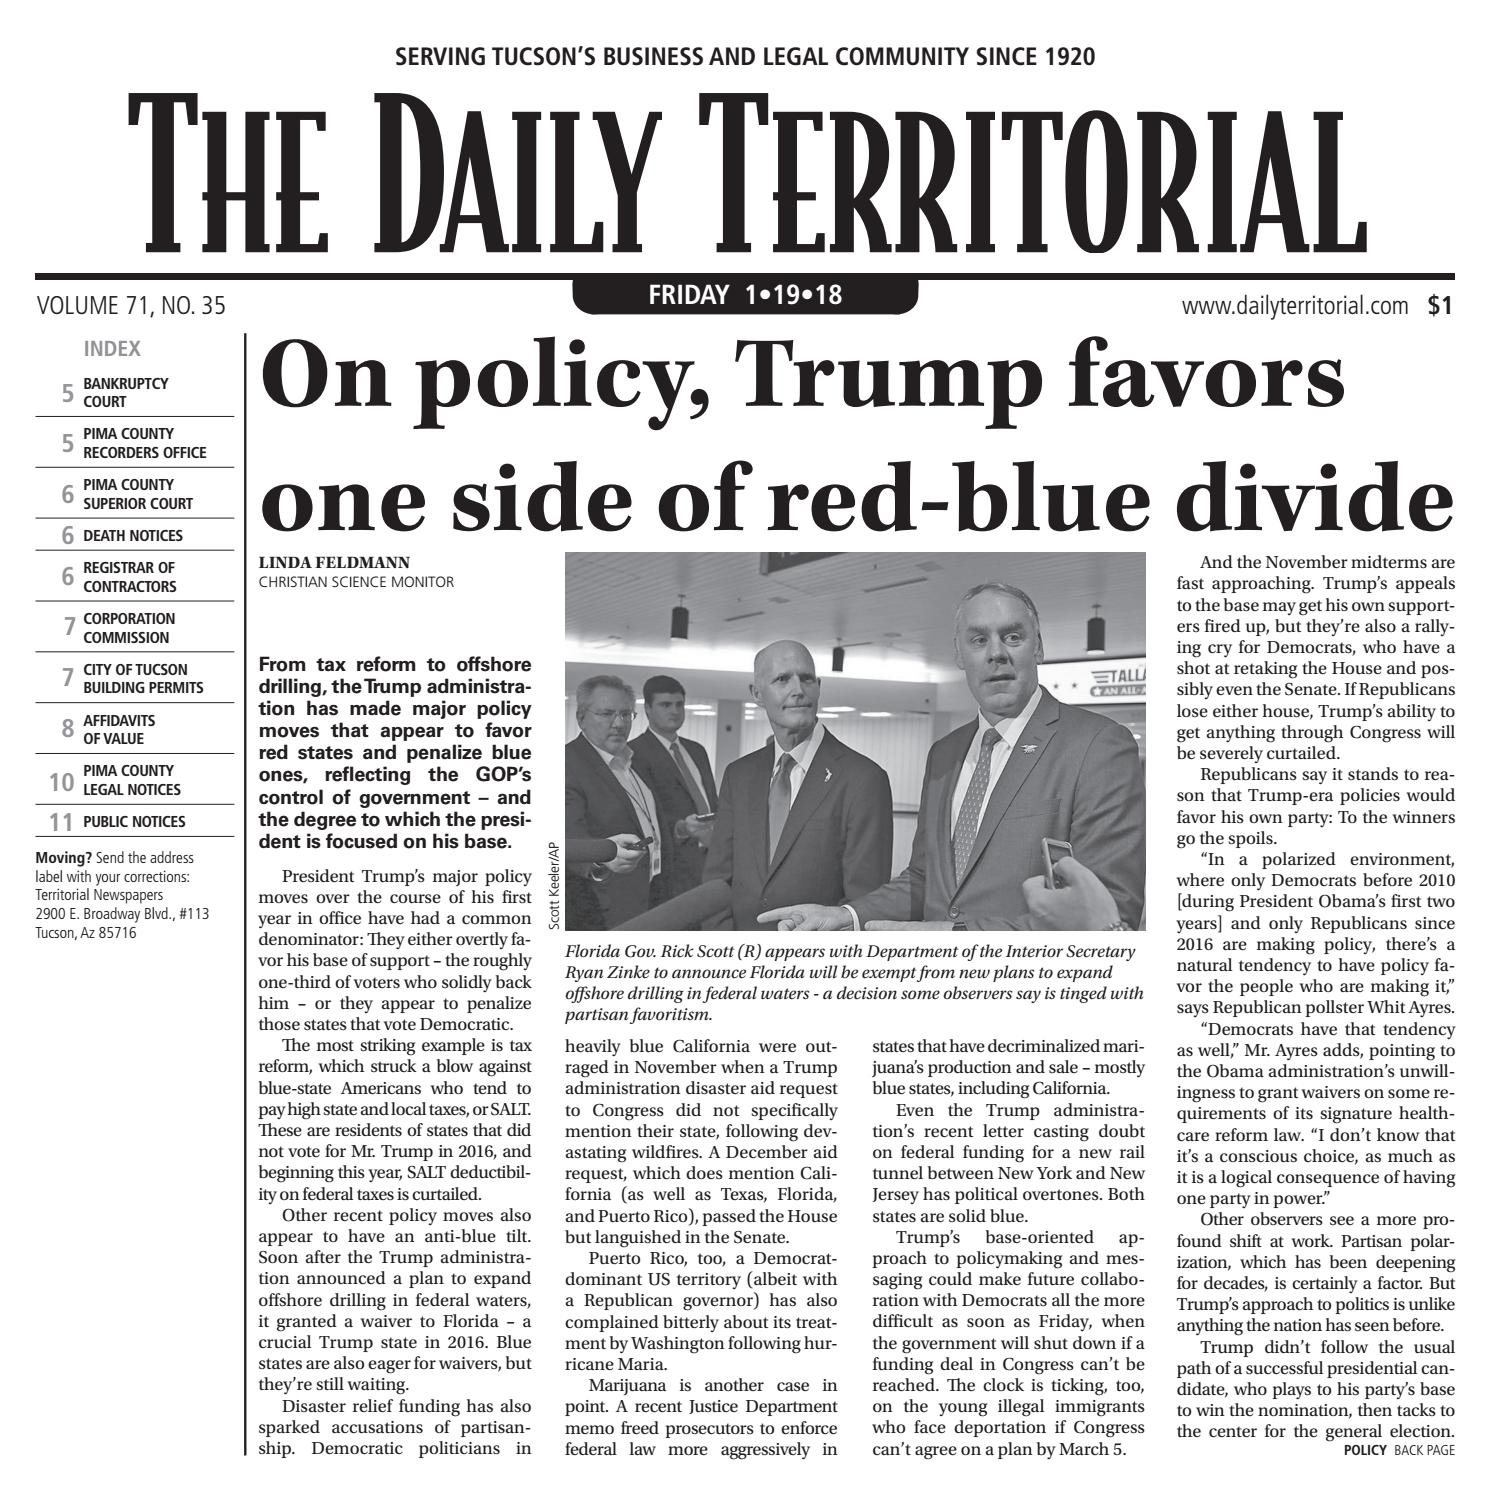 Trump Tax Plan Courts Major Backlash: 01/19/2018 The Daily Territorial By Wick Communications